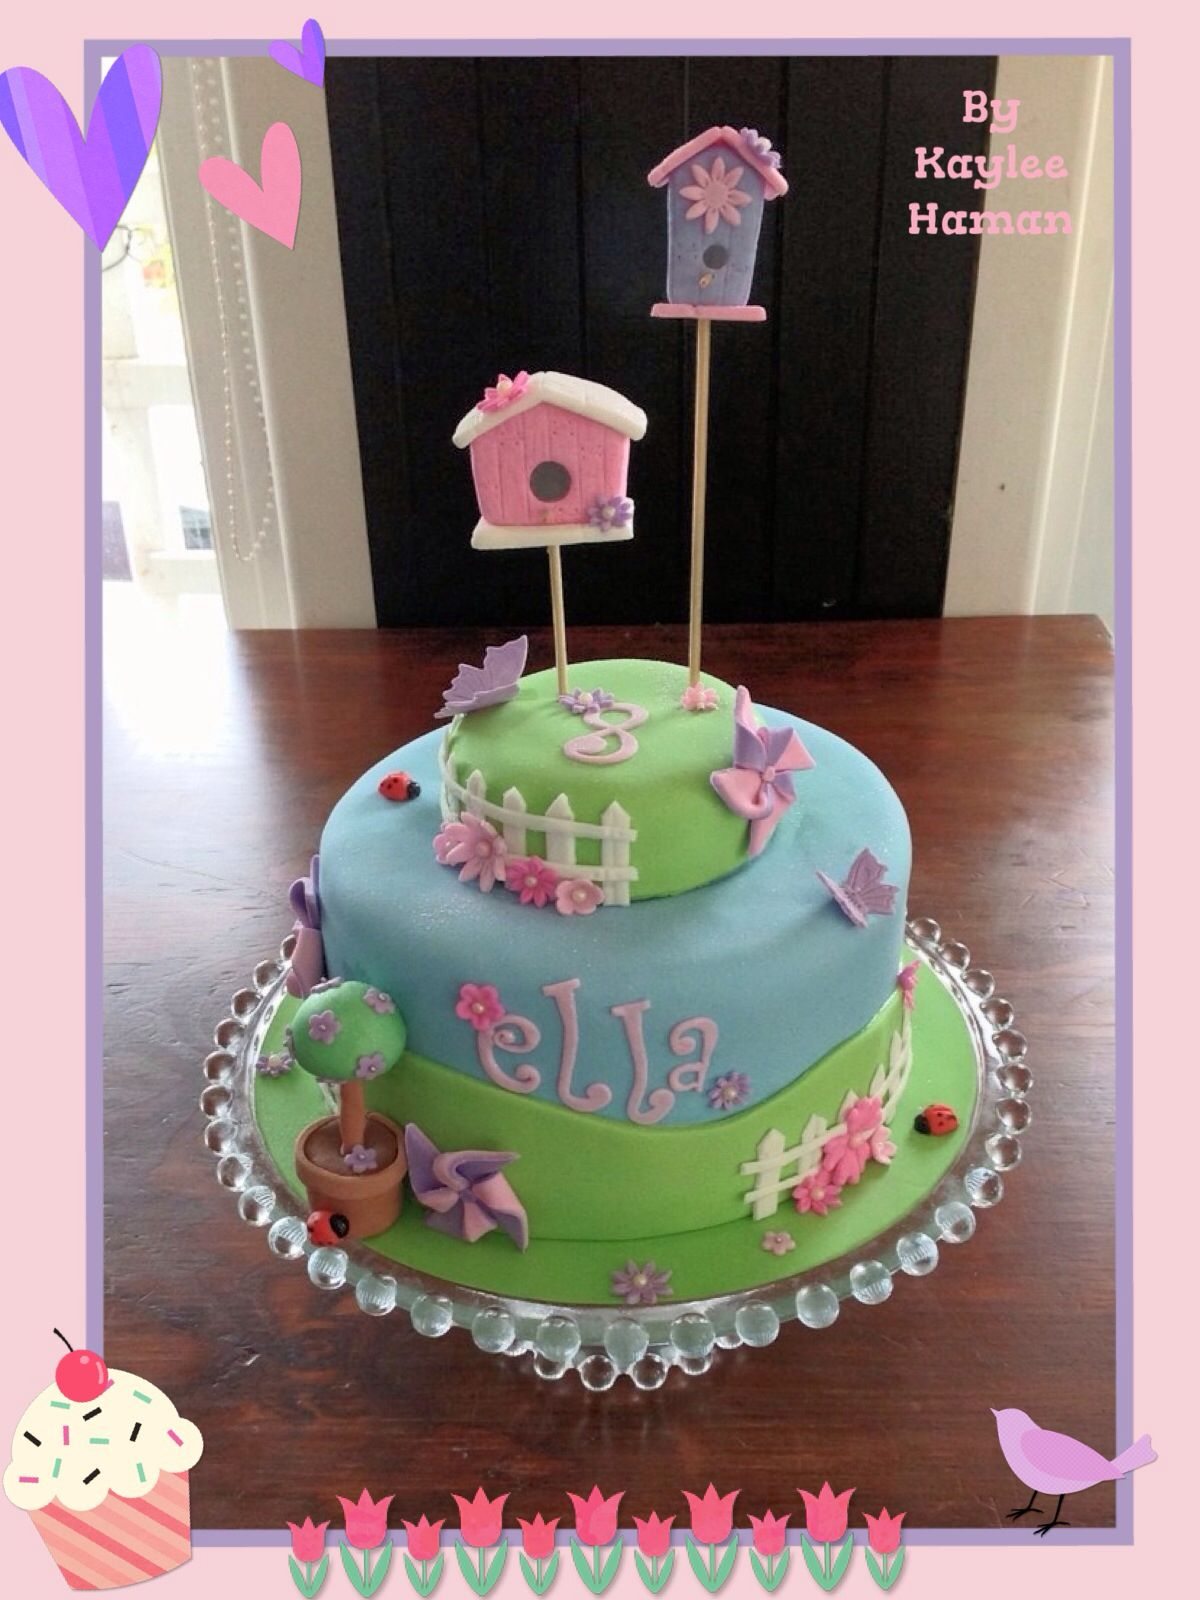 By Kaylee Haman, garden themed birthday cake with birdhouse, flowers ...